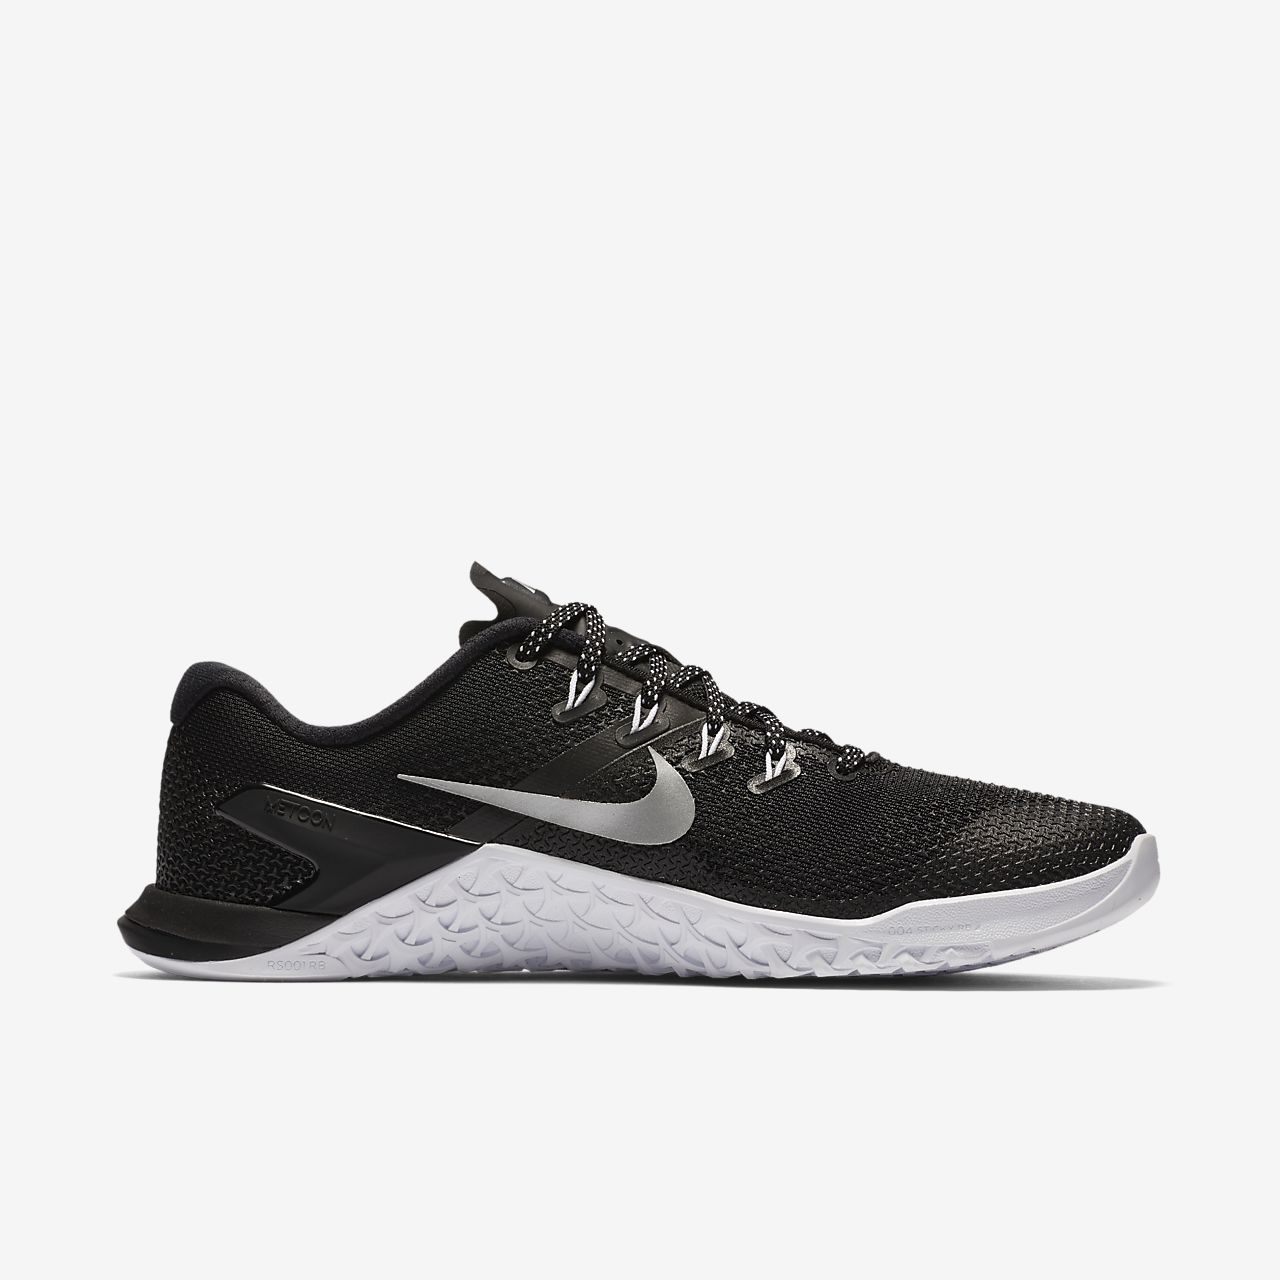 the latest ee729 04bf6 Nike Metcon 4 Women s Cross Training, Weightlifting Shoe. Nike.com AU